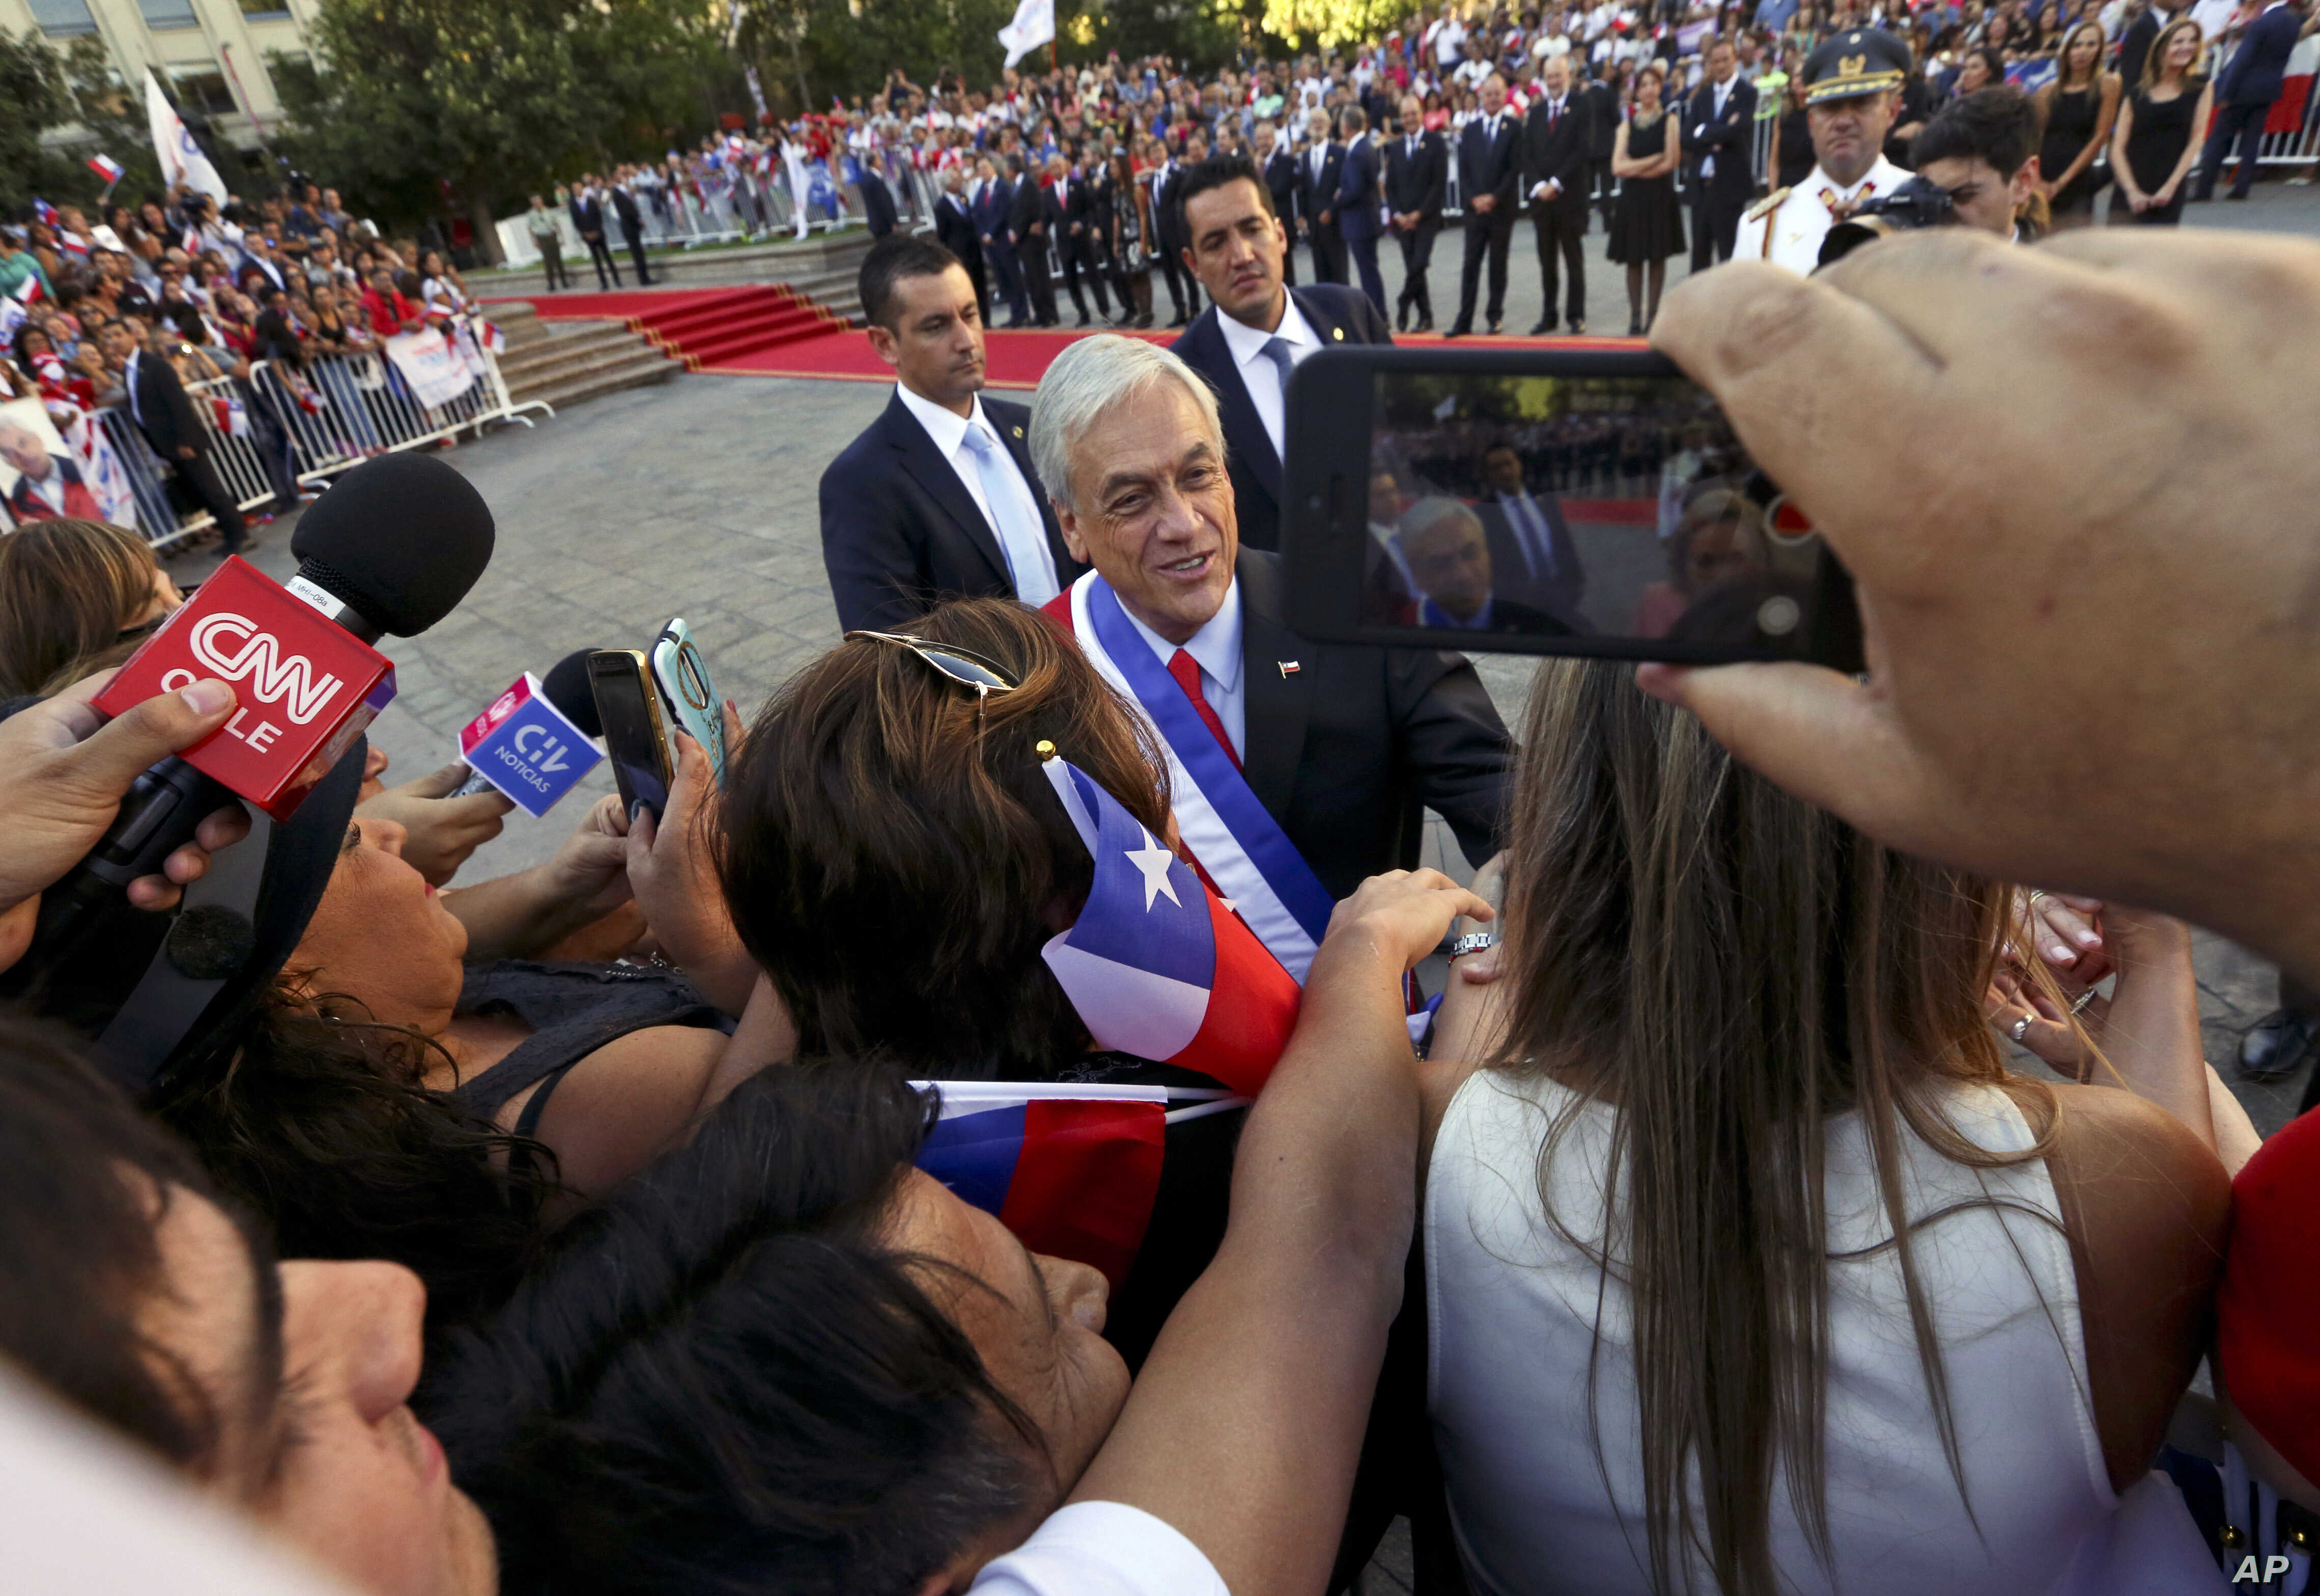 Chile's President Sebastian Pinera greets supporters outside La Moneda presidential palace on the day of his inauguration in Santiago, Chile, Sunday, March 11, 2018.